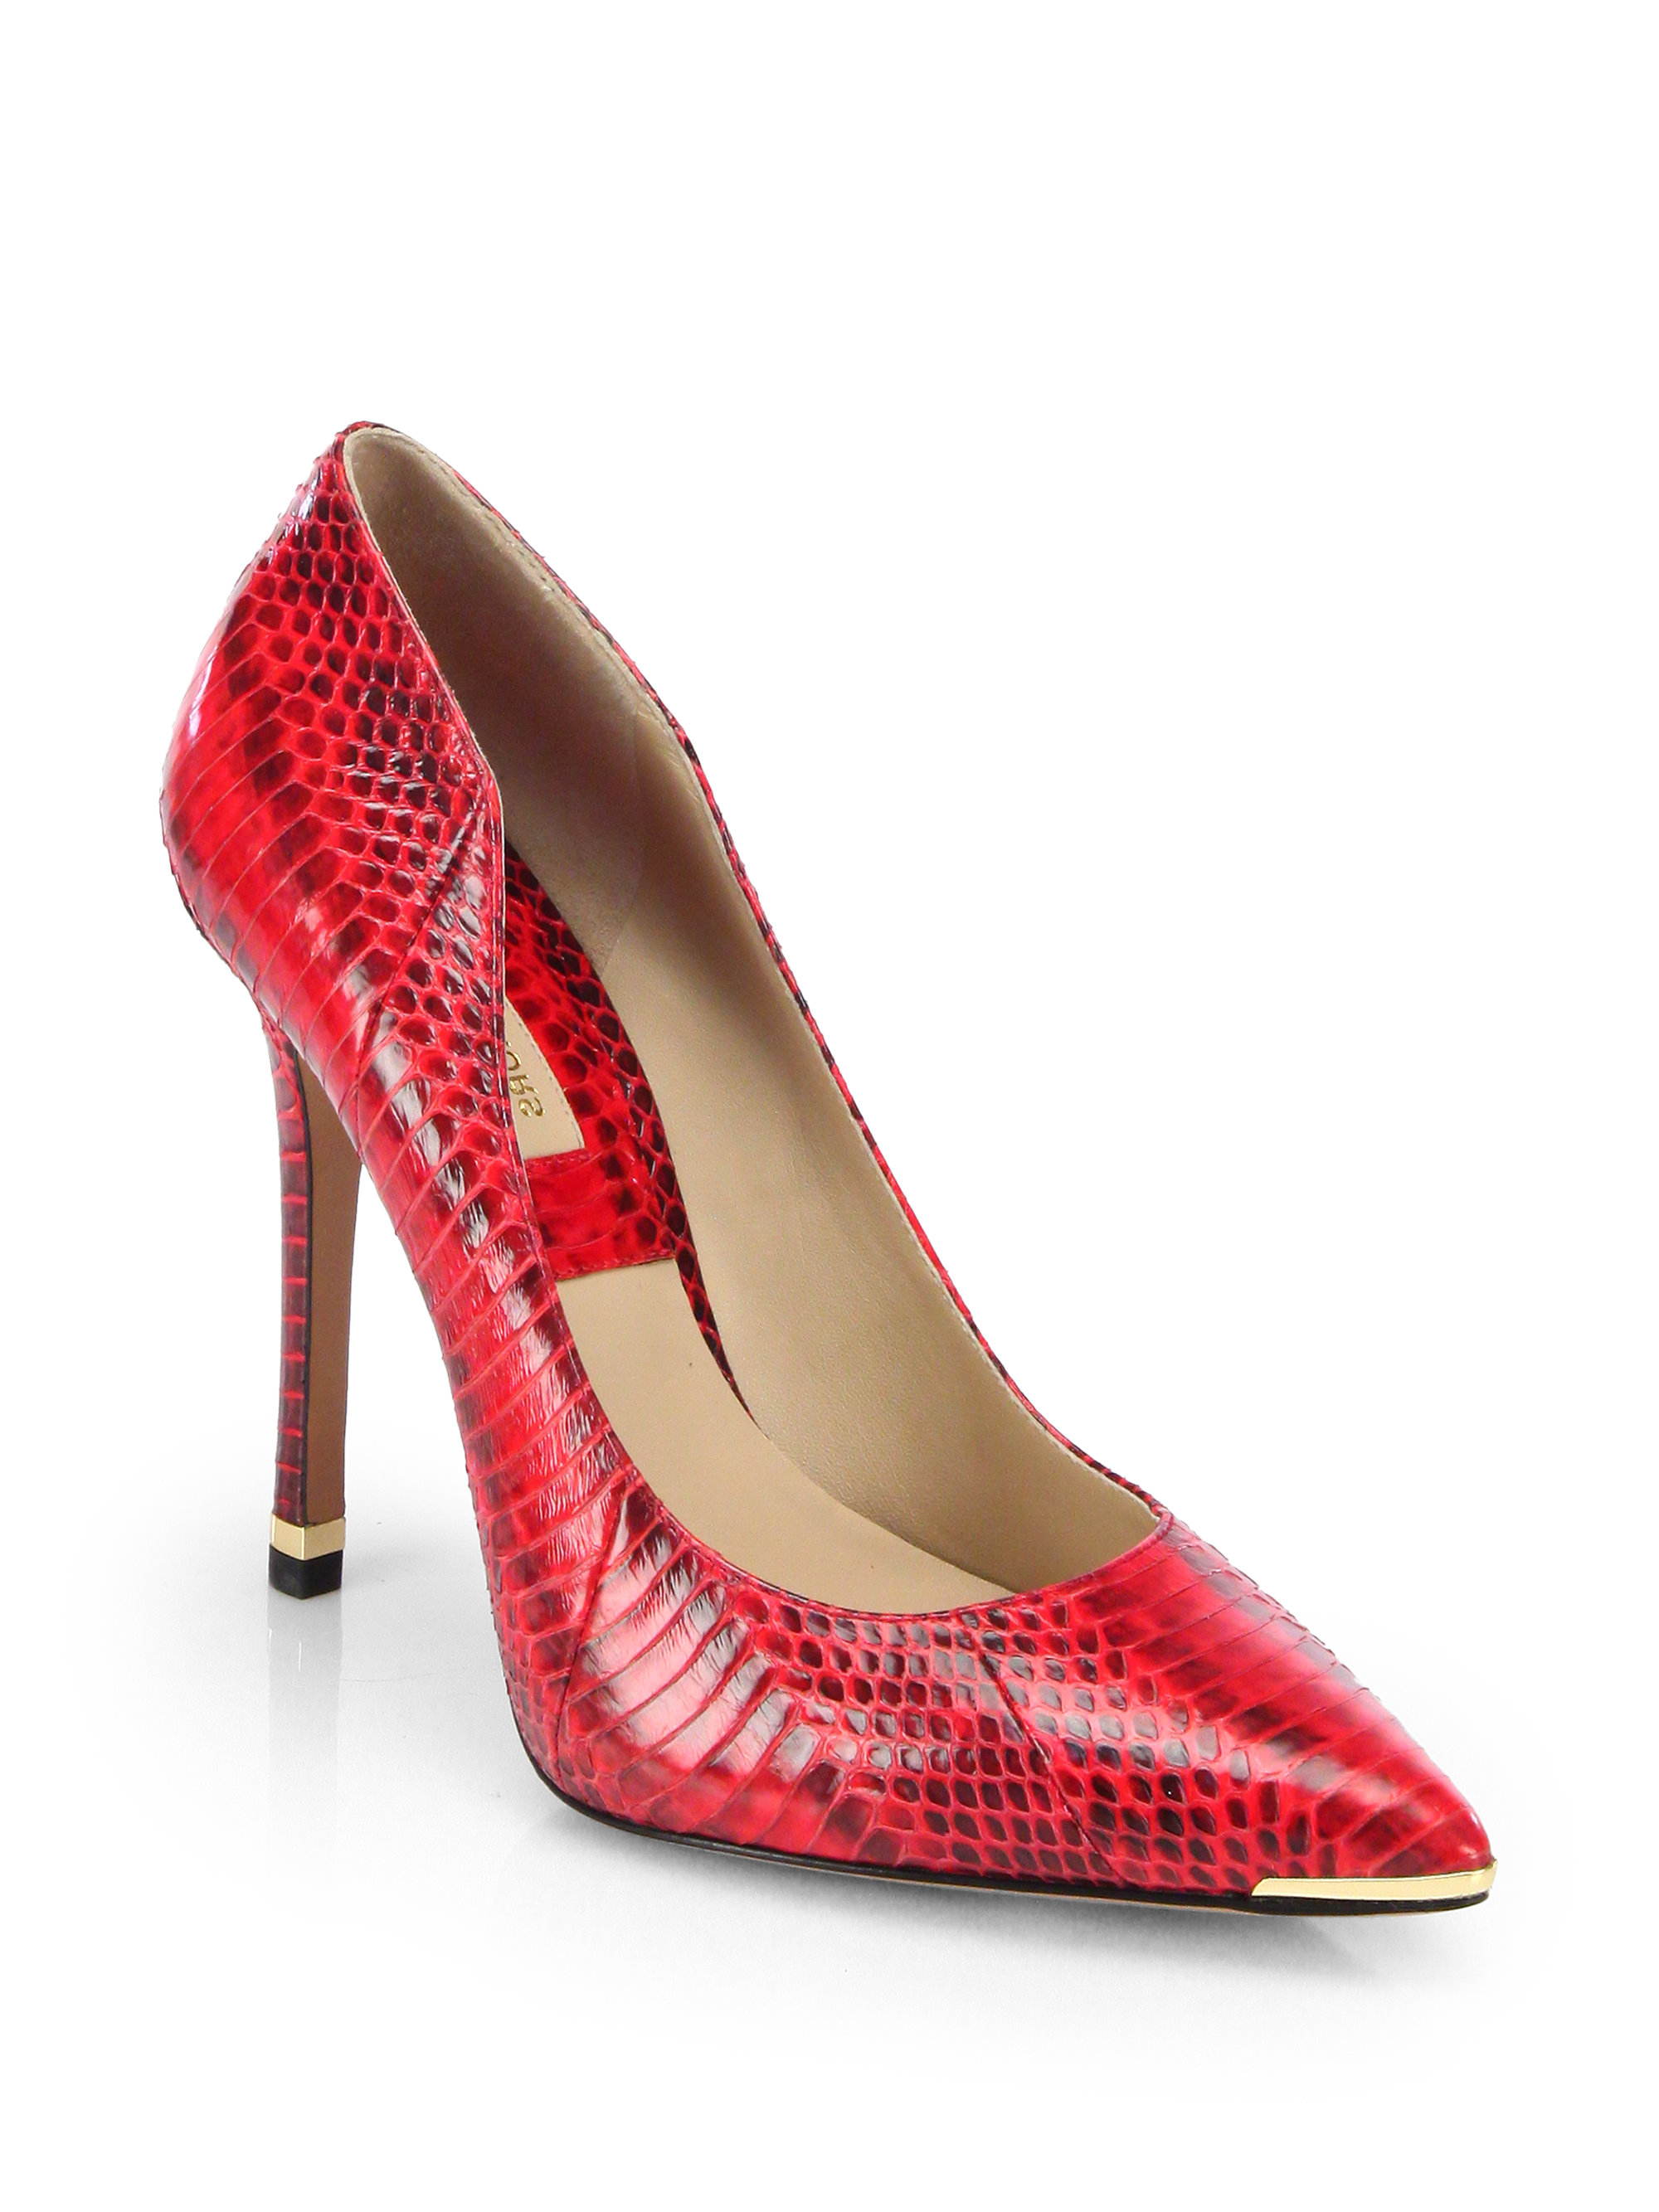 a5ab74f58c7fb Michael Kors Avra Snakeskin Pumps in Red - Lyst